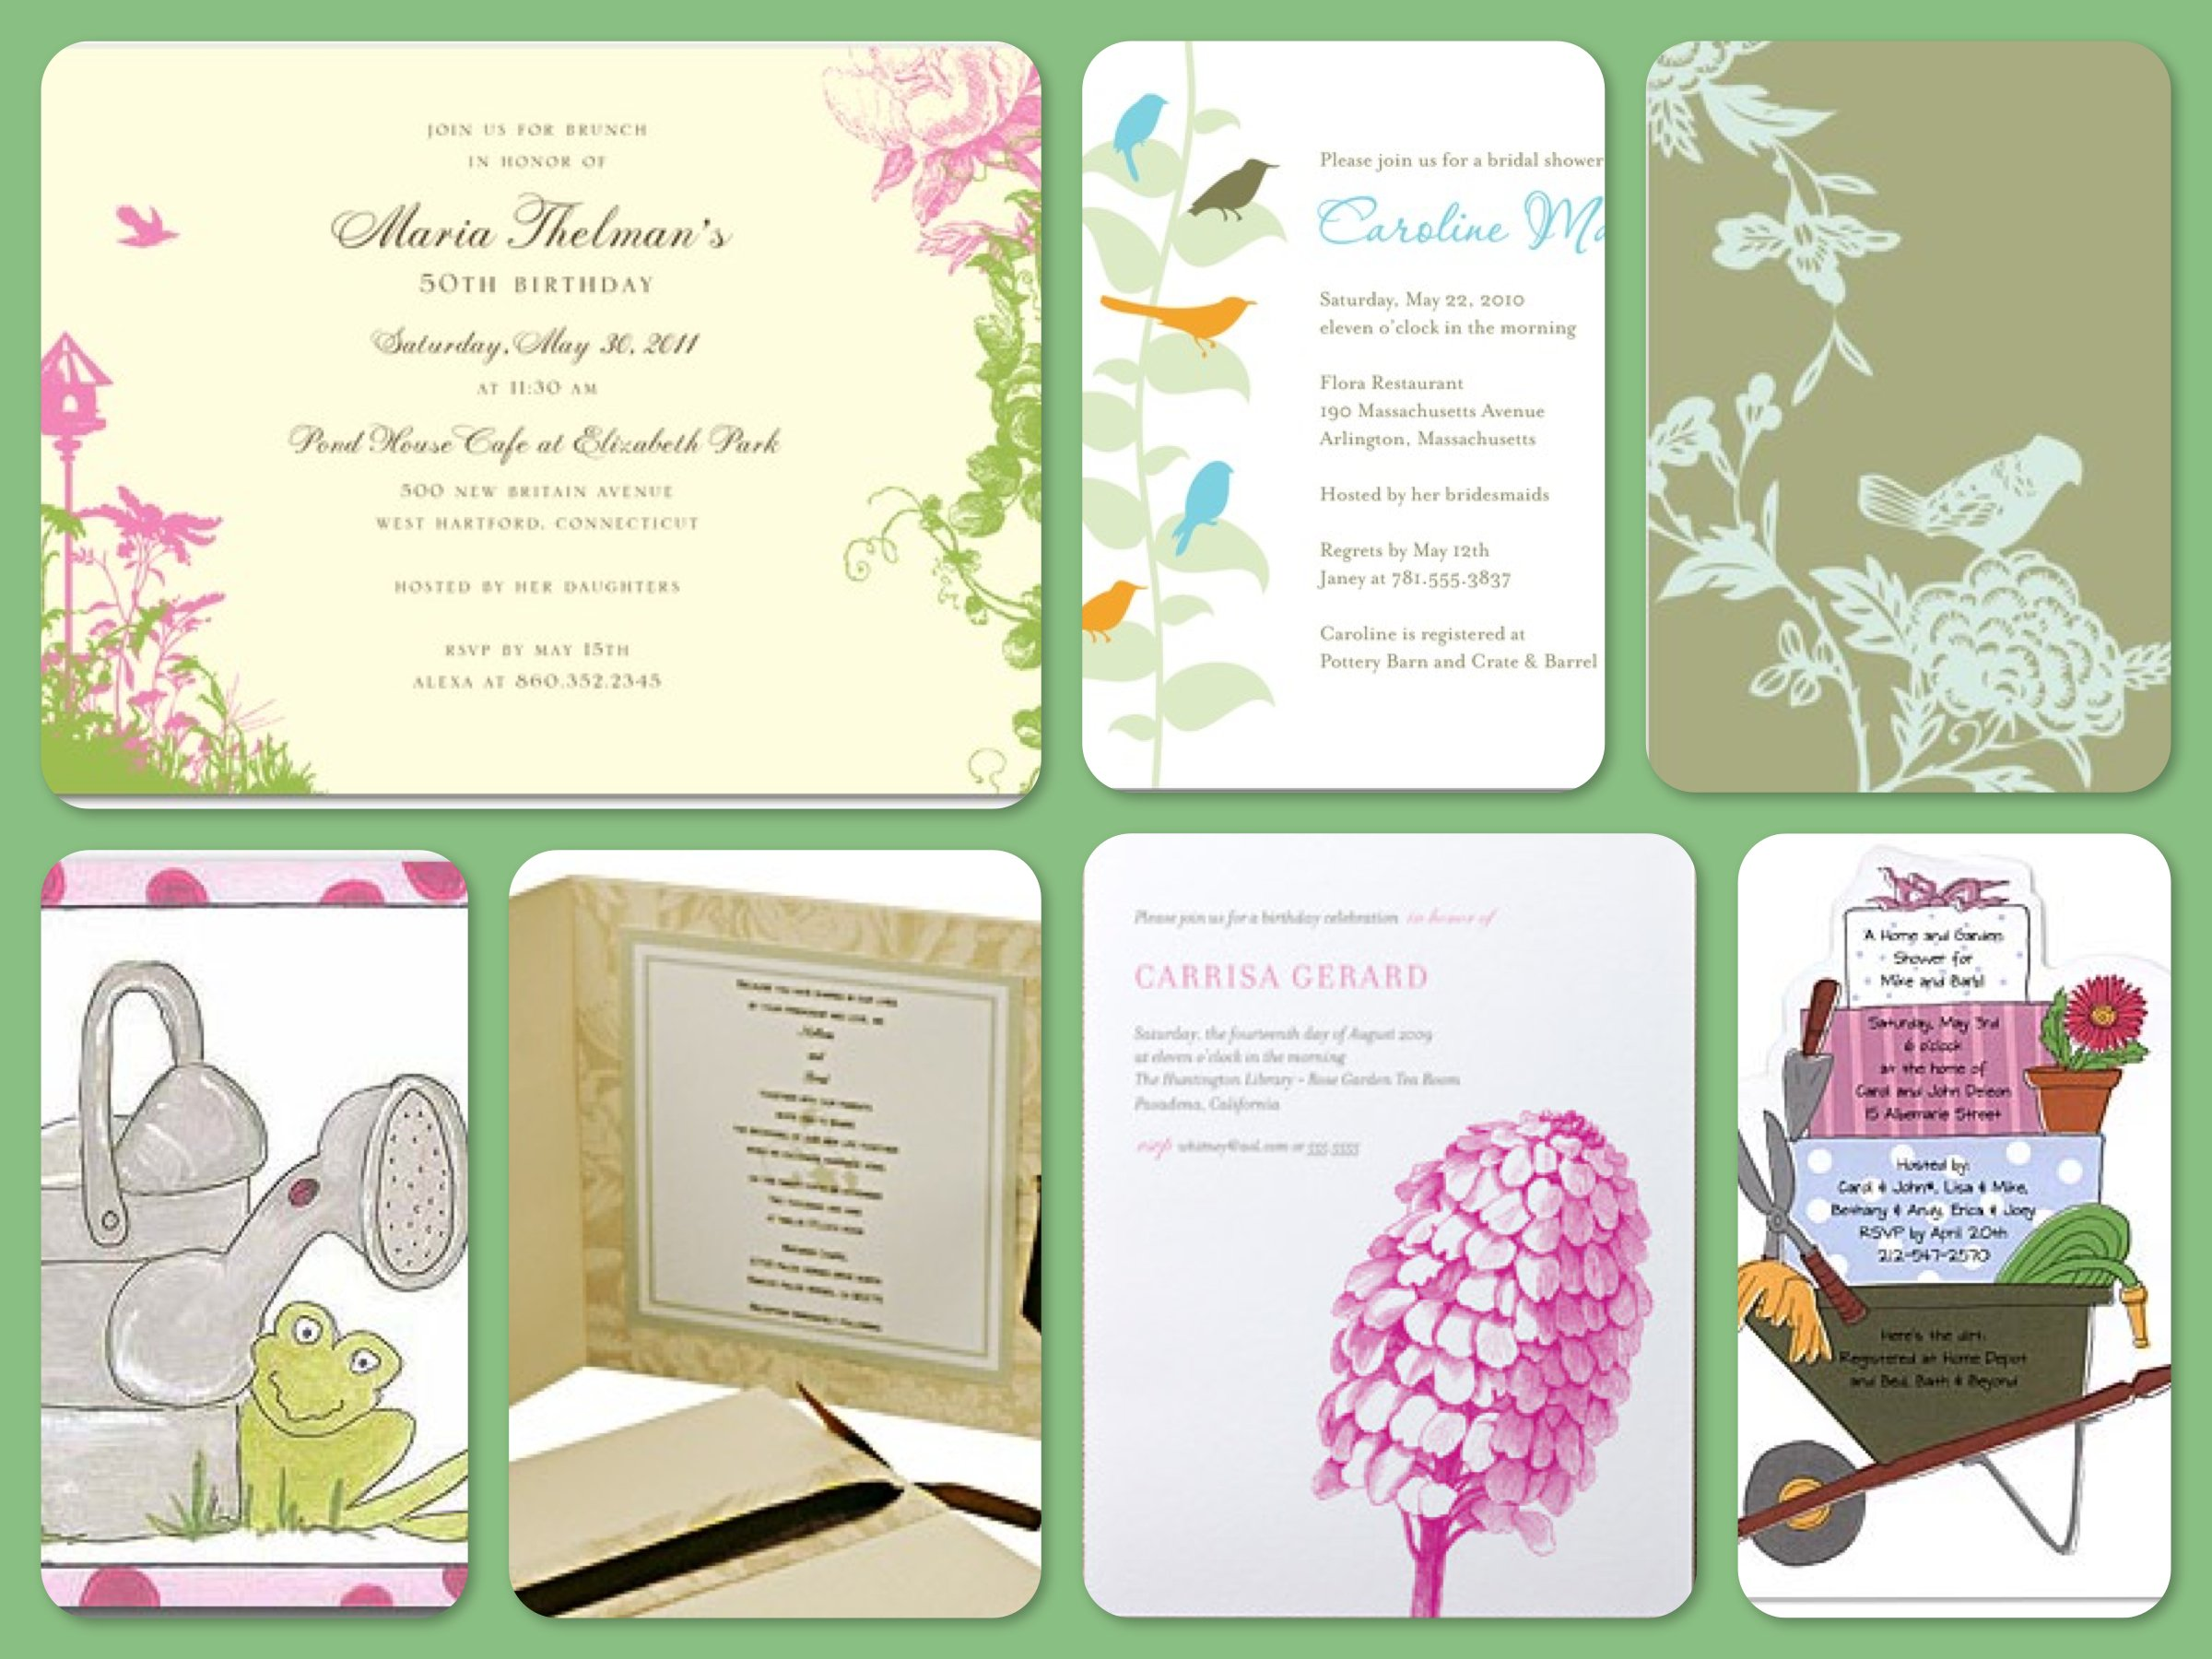 Around The Clock Shower Invitations is luxury invitation design